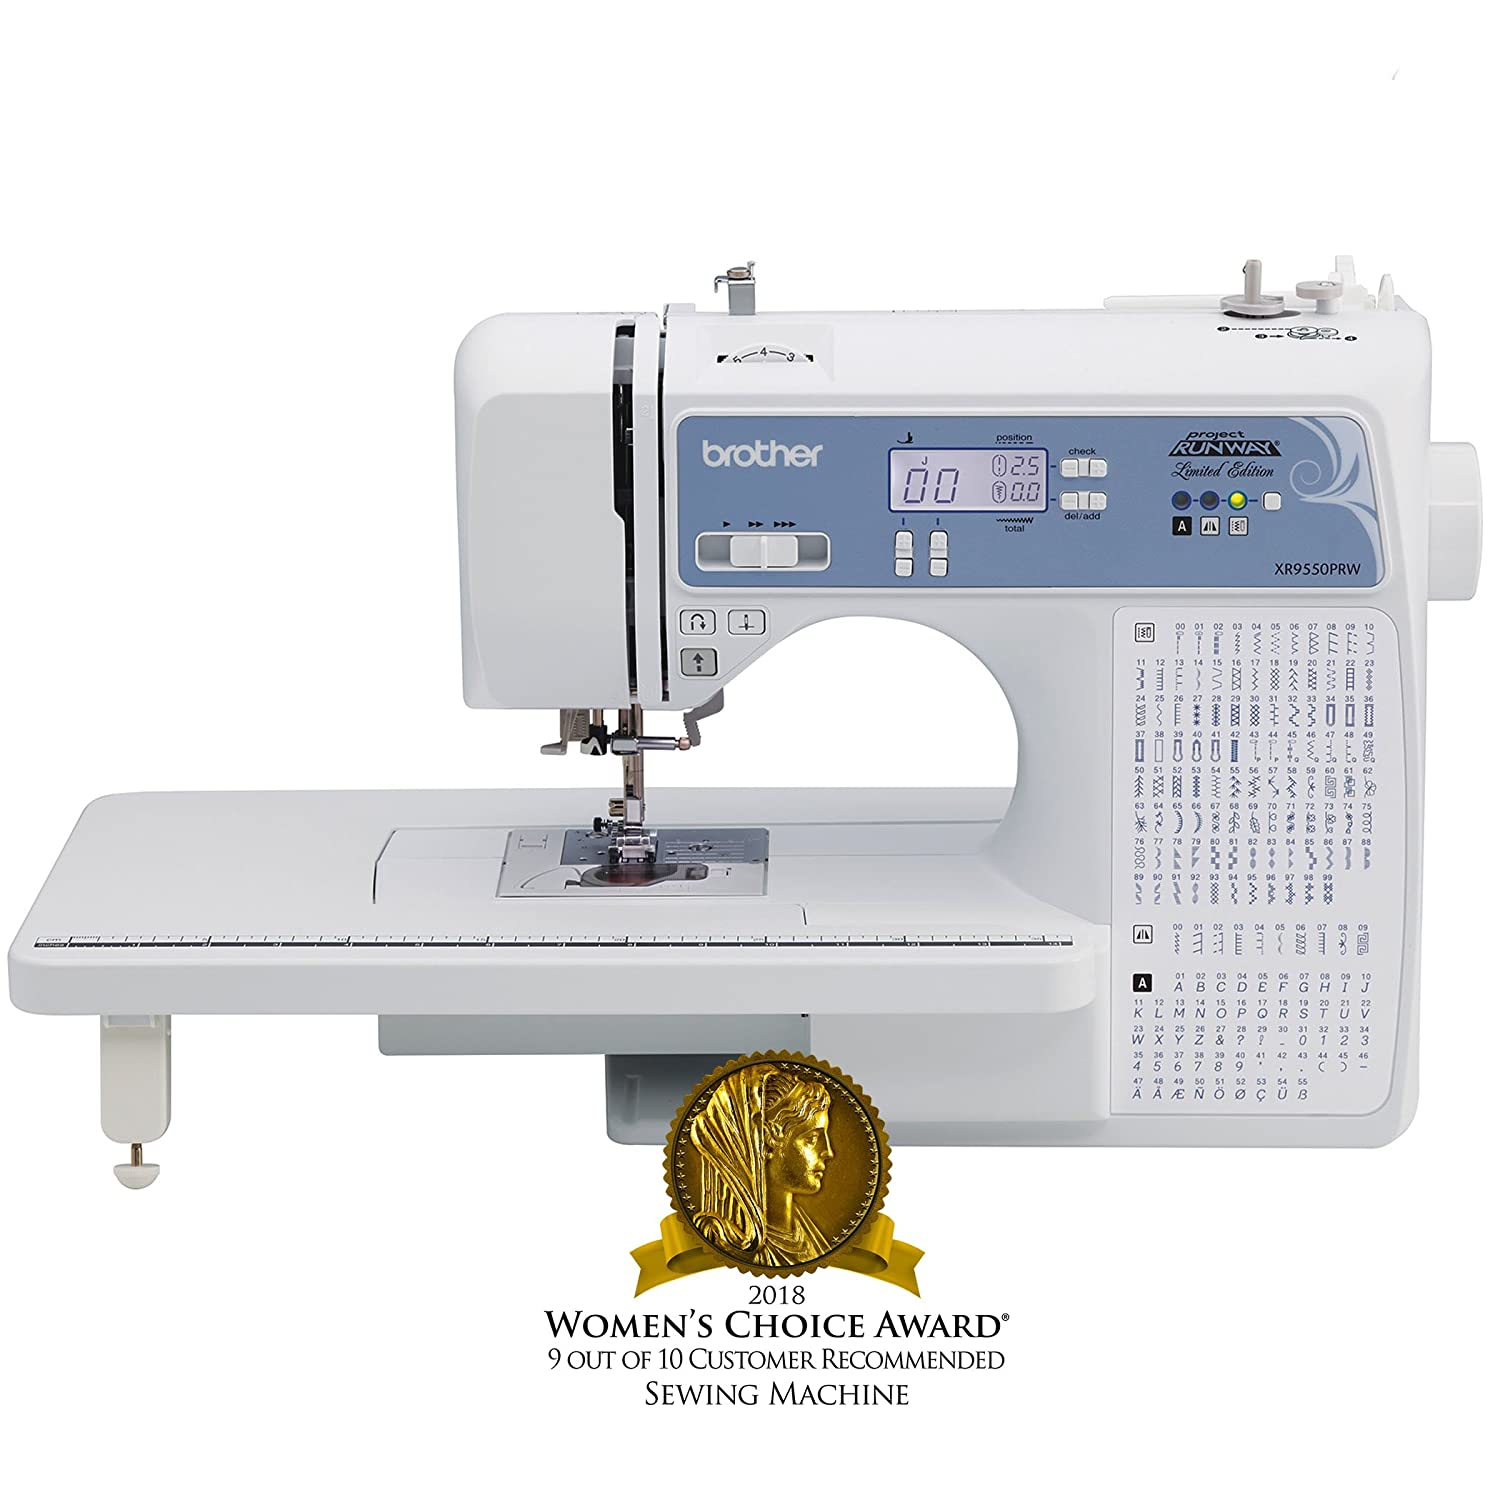 Brother, Computerized Sewing Machine, XR9550PRW, Project Runway Limited Edition, 110 Built-in Utility, LCD Screen, Hard Case Brother International